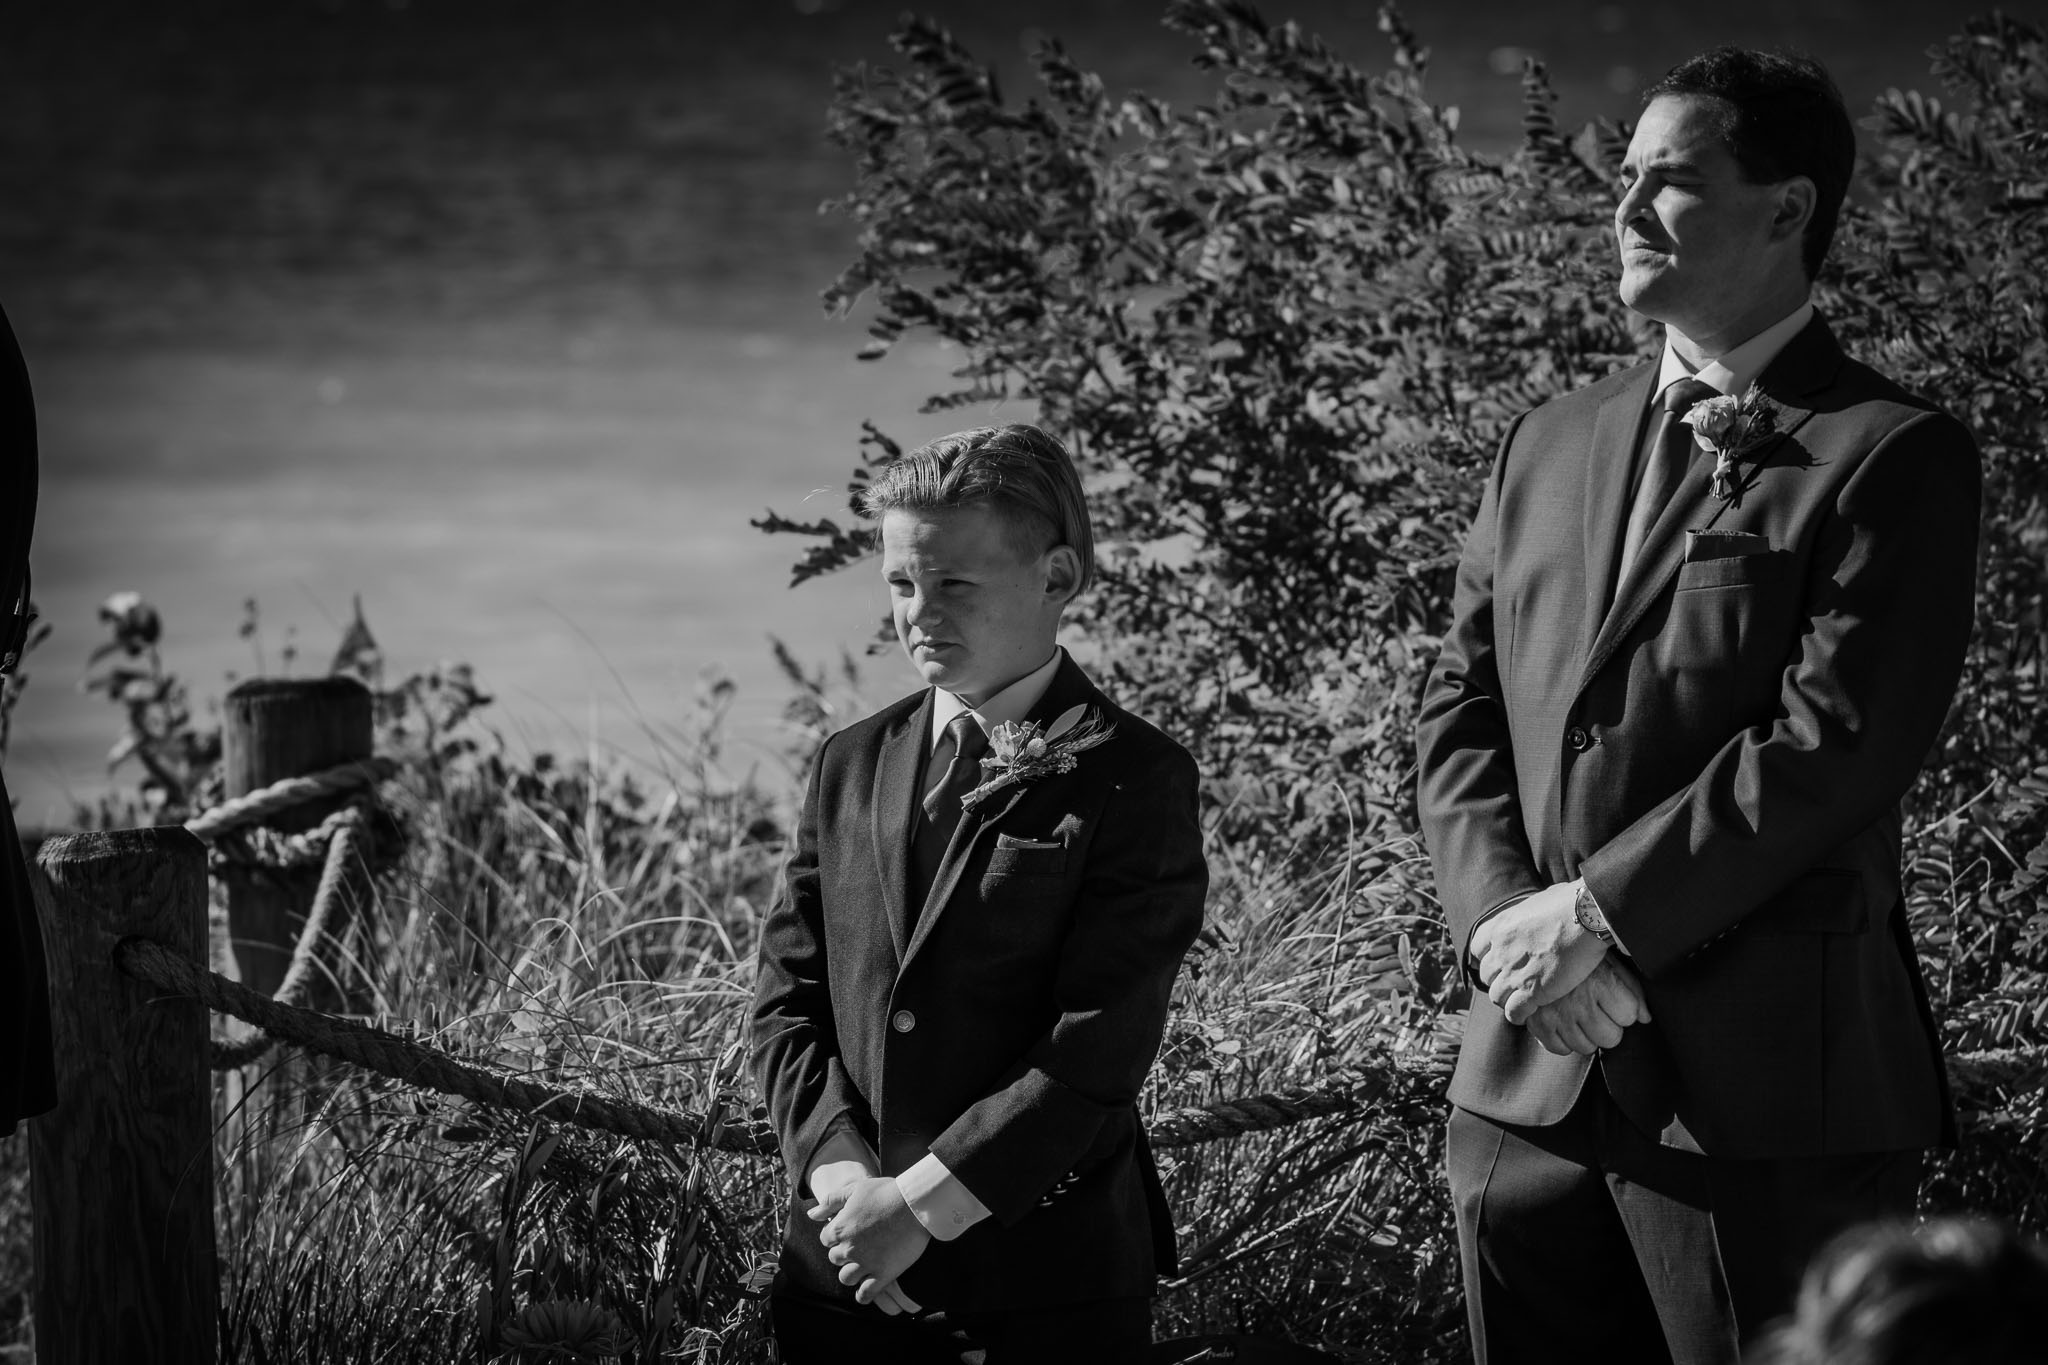 The son of the groom standing up with his dad as marries the love of his life.